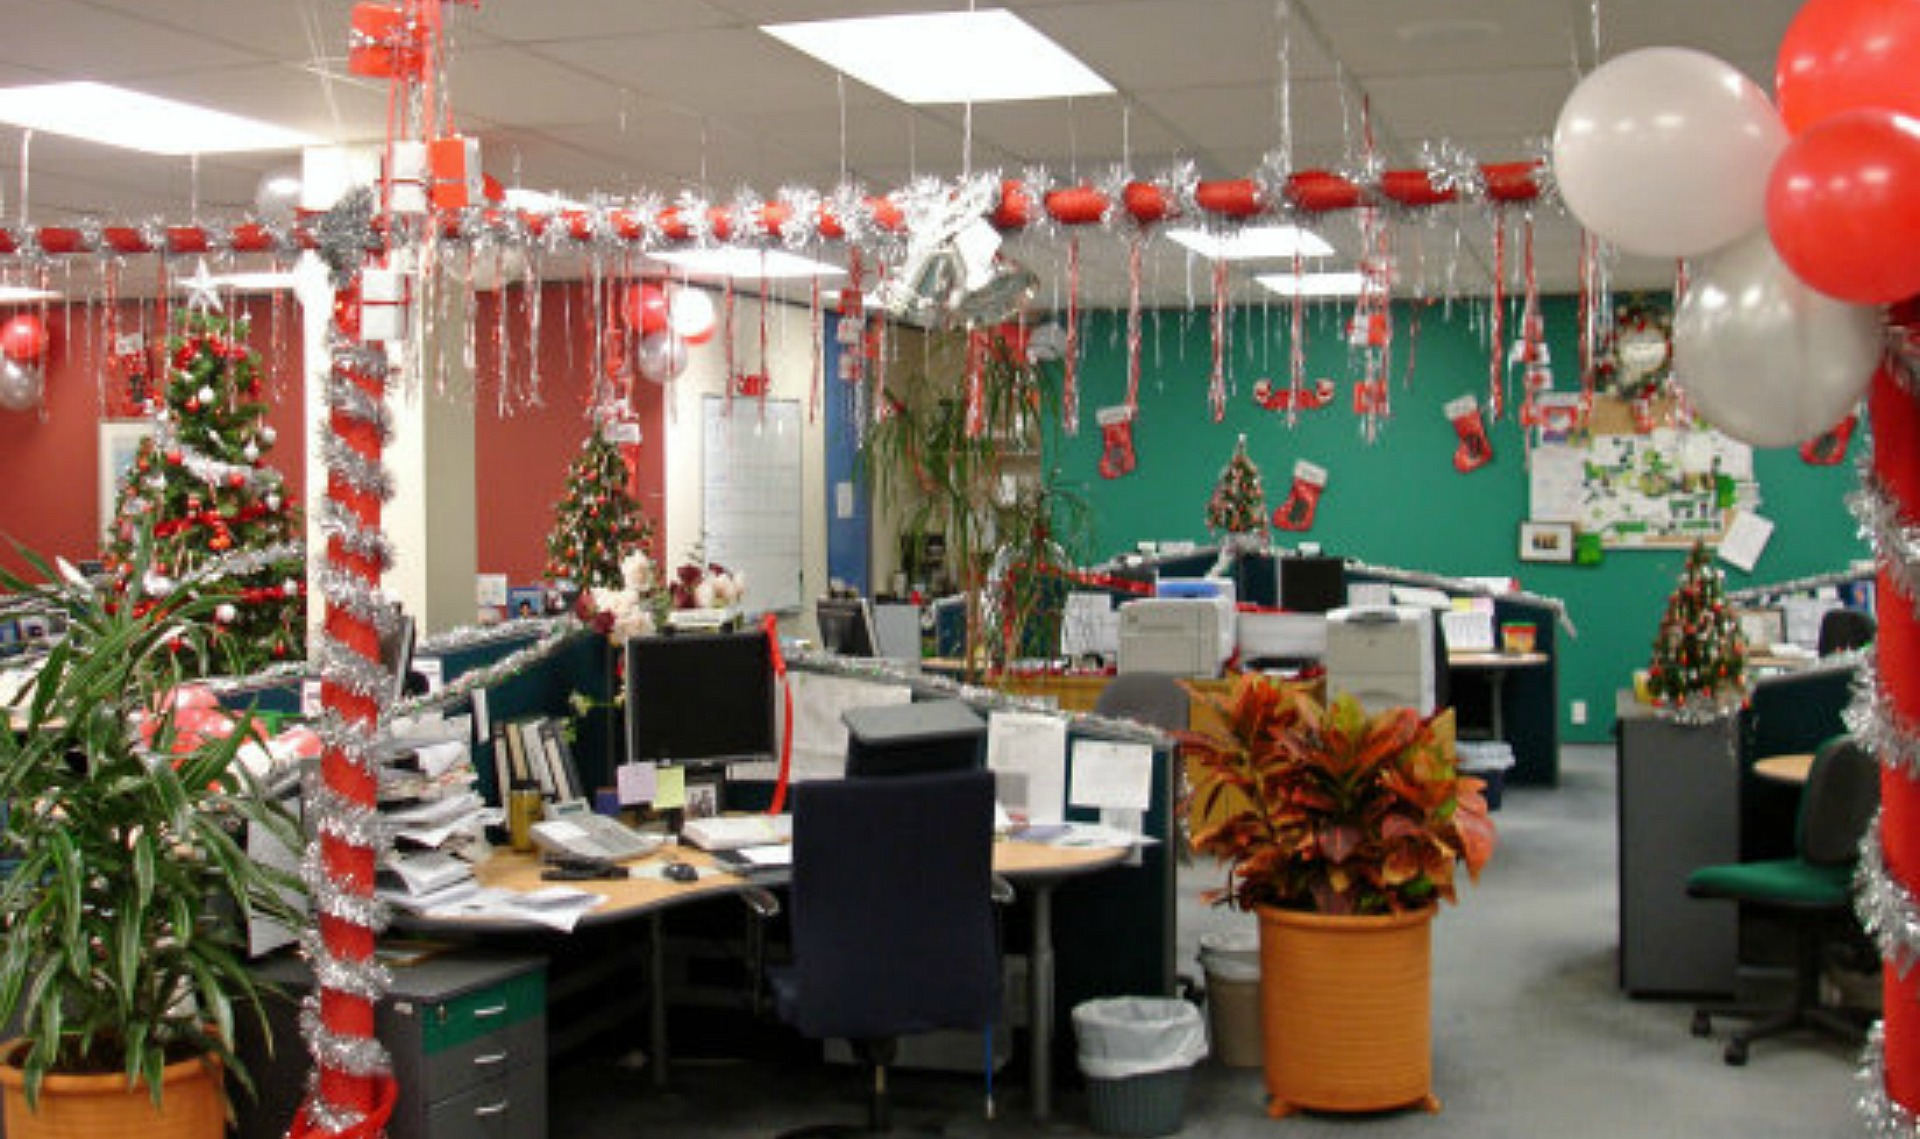 D co bureau noel exemples d 39 am nagements - Decoracion navidena oficina ...